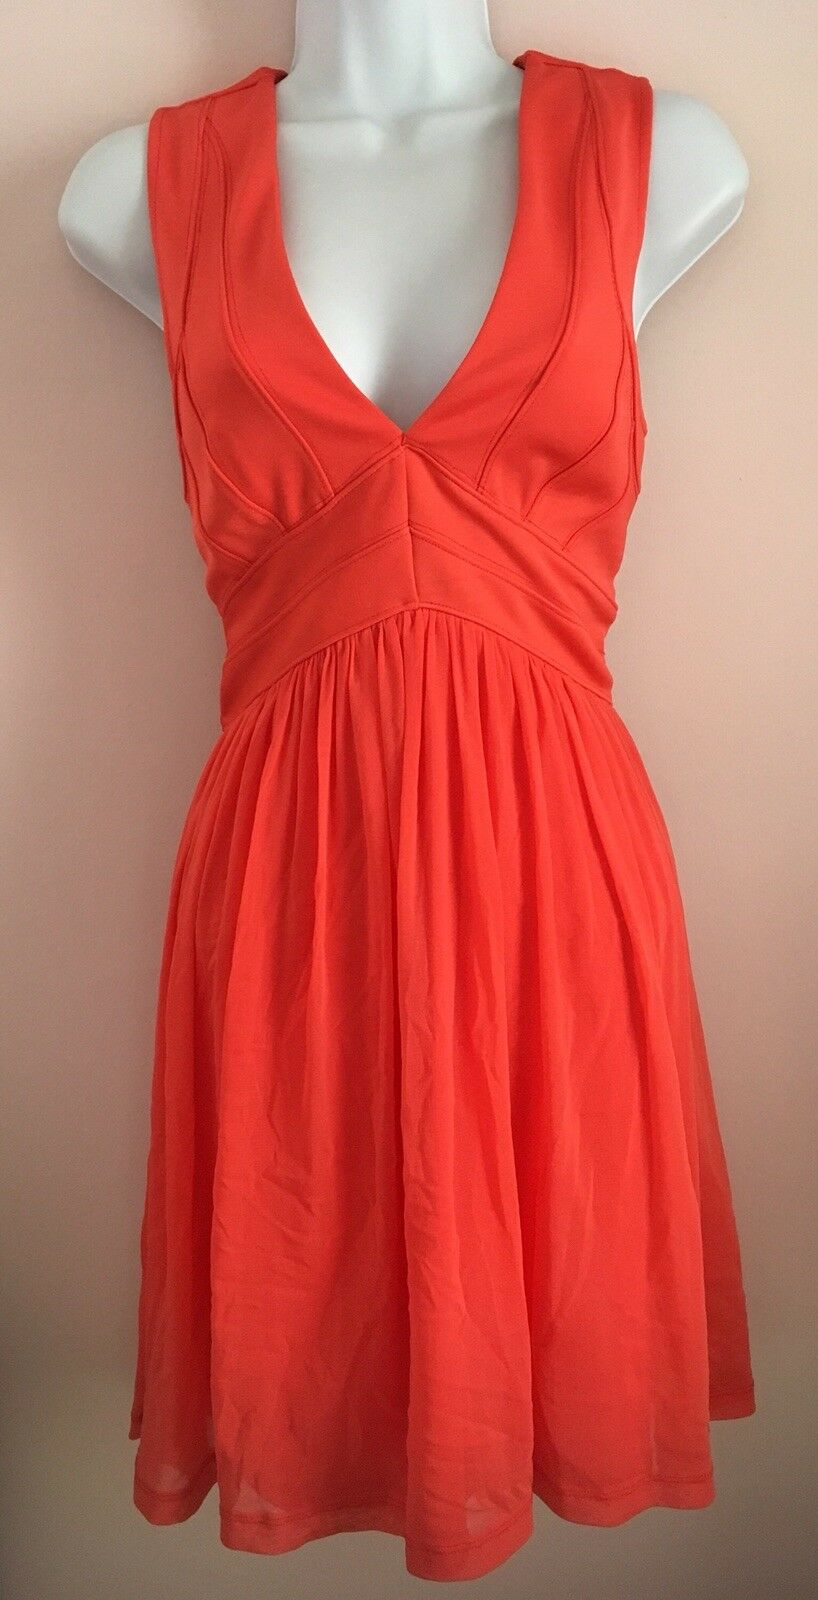 New With tags Topshop Coral Pink Summer Prom Dress Size 10 Rrp